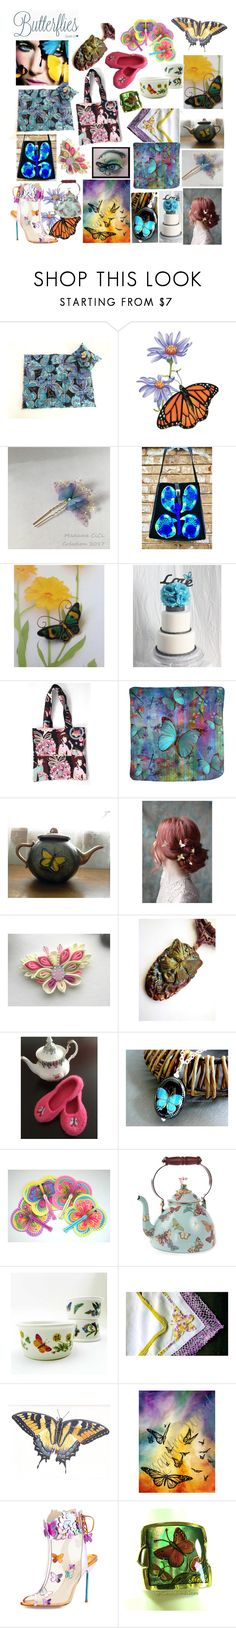 Summer Favorites With Butterflies by belladonnasjoy on Polyvore featuring Sophia Webster, Portmeirion, MacKenzie-Childs, Farfalla and modern